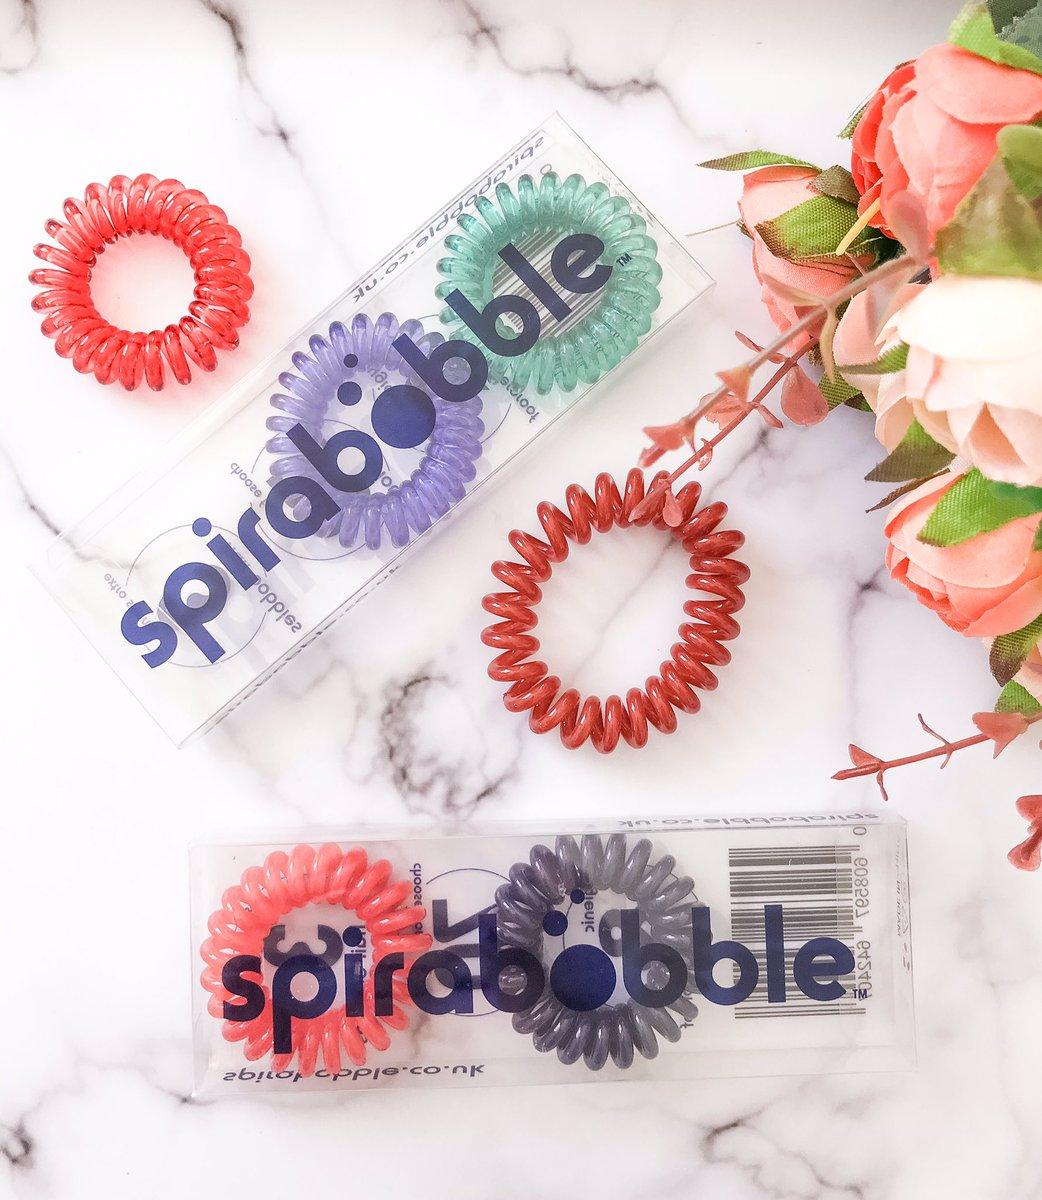 AD PR Product - So many colours to choose from with @SpiraBobble 😍 Get a pack of 3 for £4.99!   https://t.co/Rh3qF8RPv3  @BloggingBabesRT @cosyblogclub @BloggersTribe @BloggersHut @bloglove2018 @LovingBlogs #bloggerstribe #BloggersHutRT #bloggingcommunity https://t.co/slrR3IFkmx